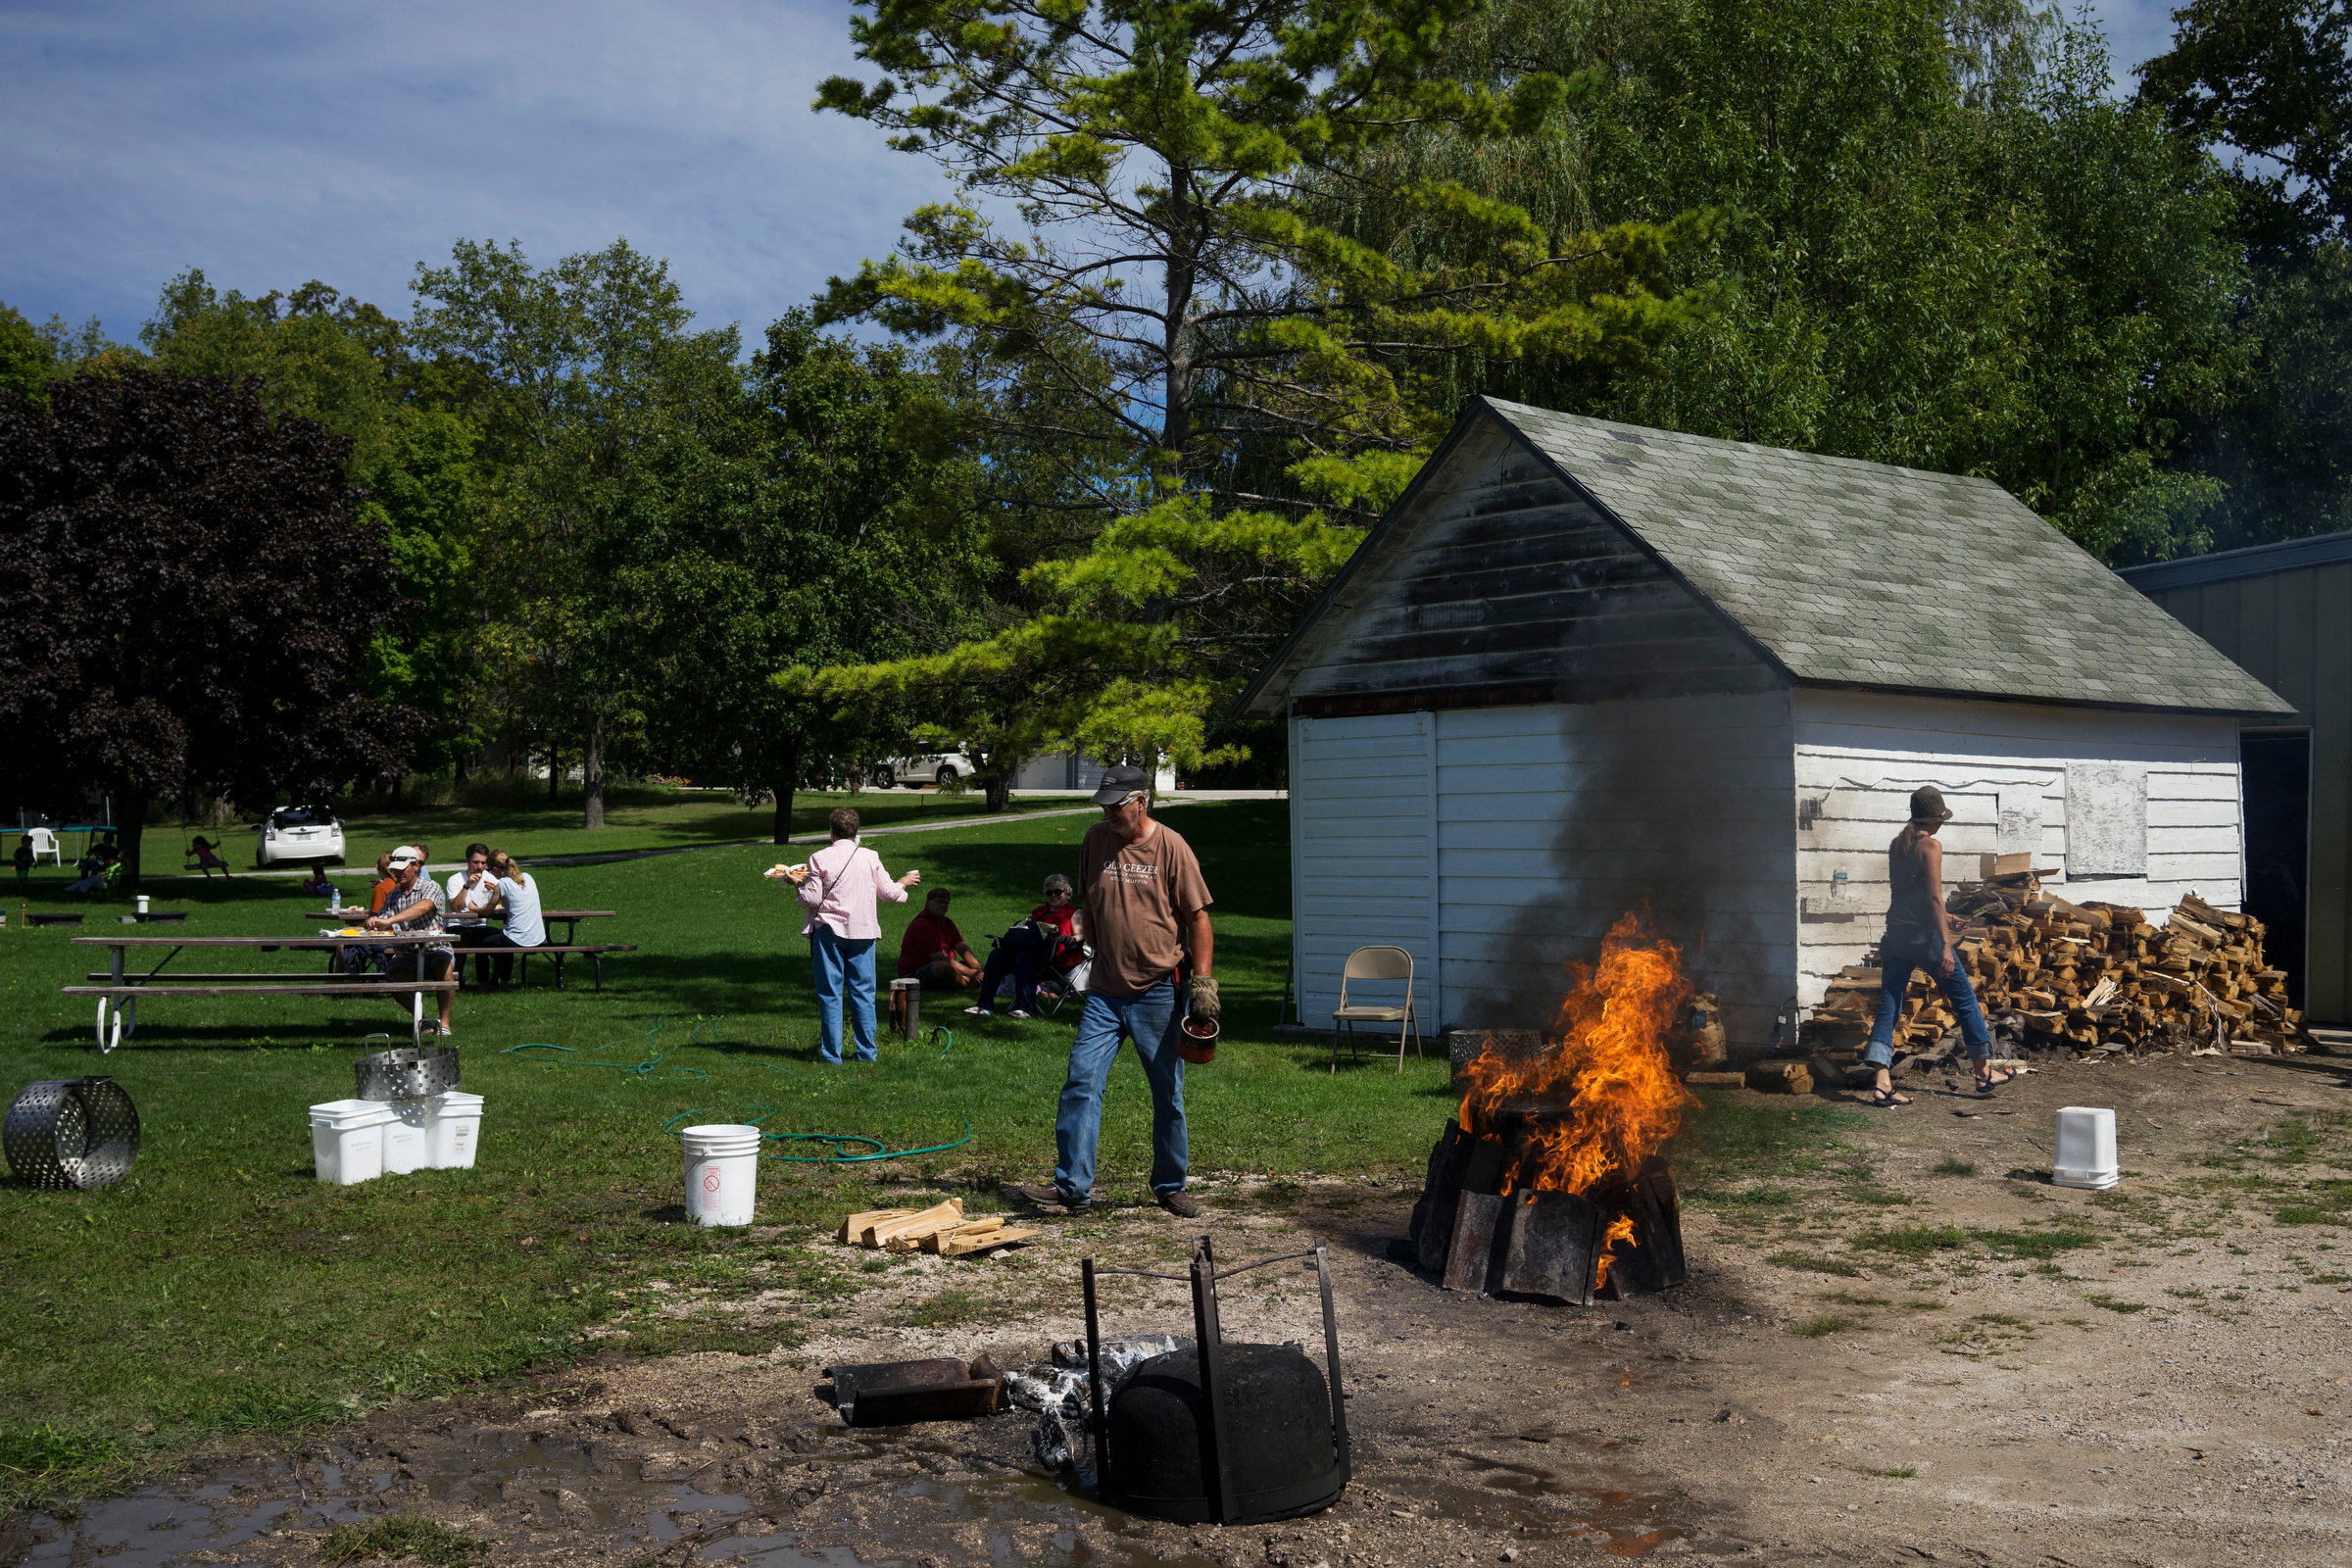 The Weborg family puts on their annual Labor Day fish boil near the family docks in Gills Rock, WI.